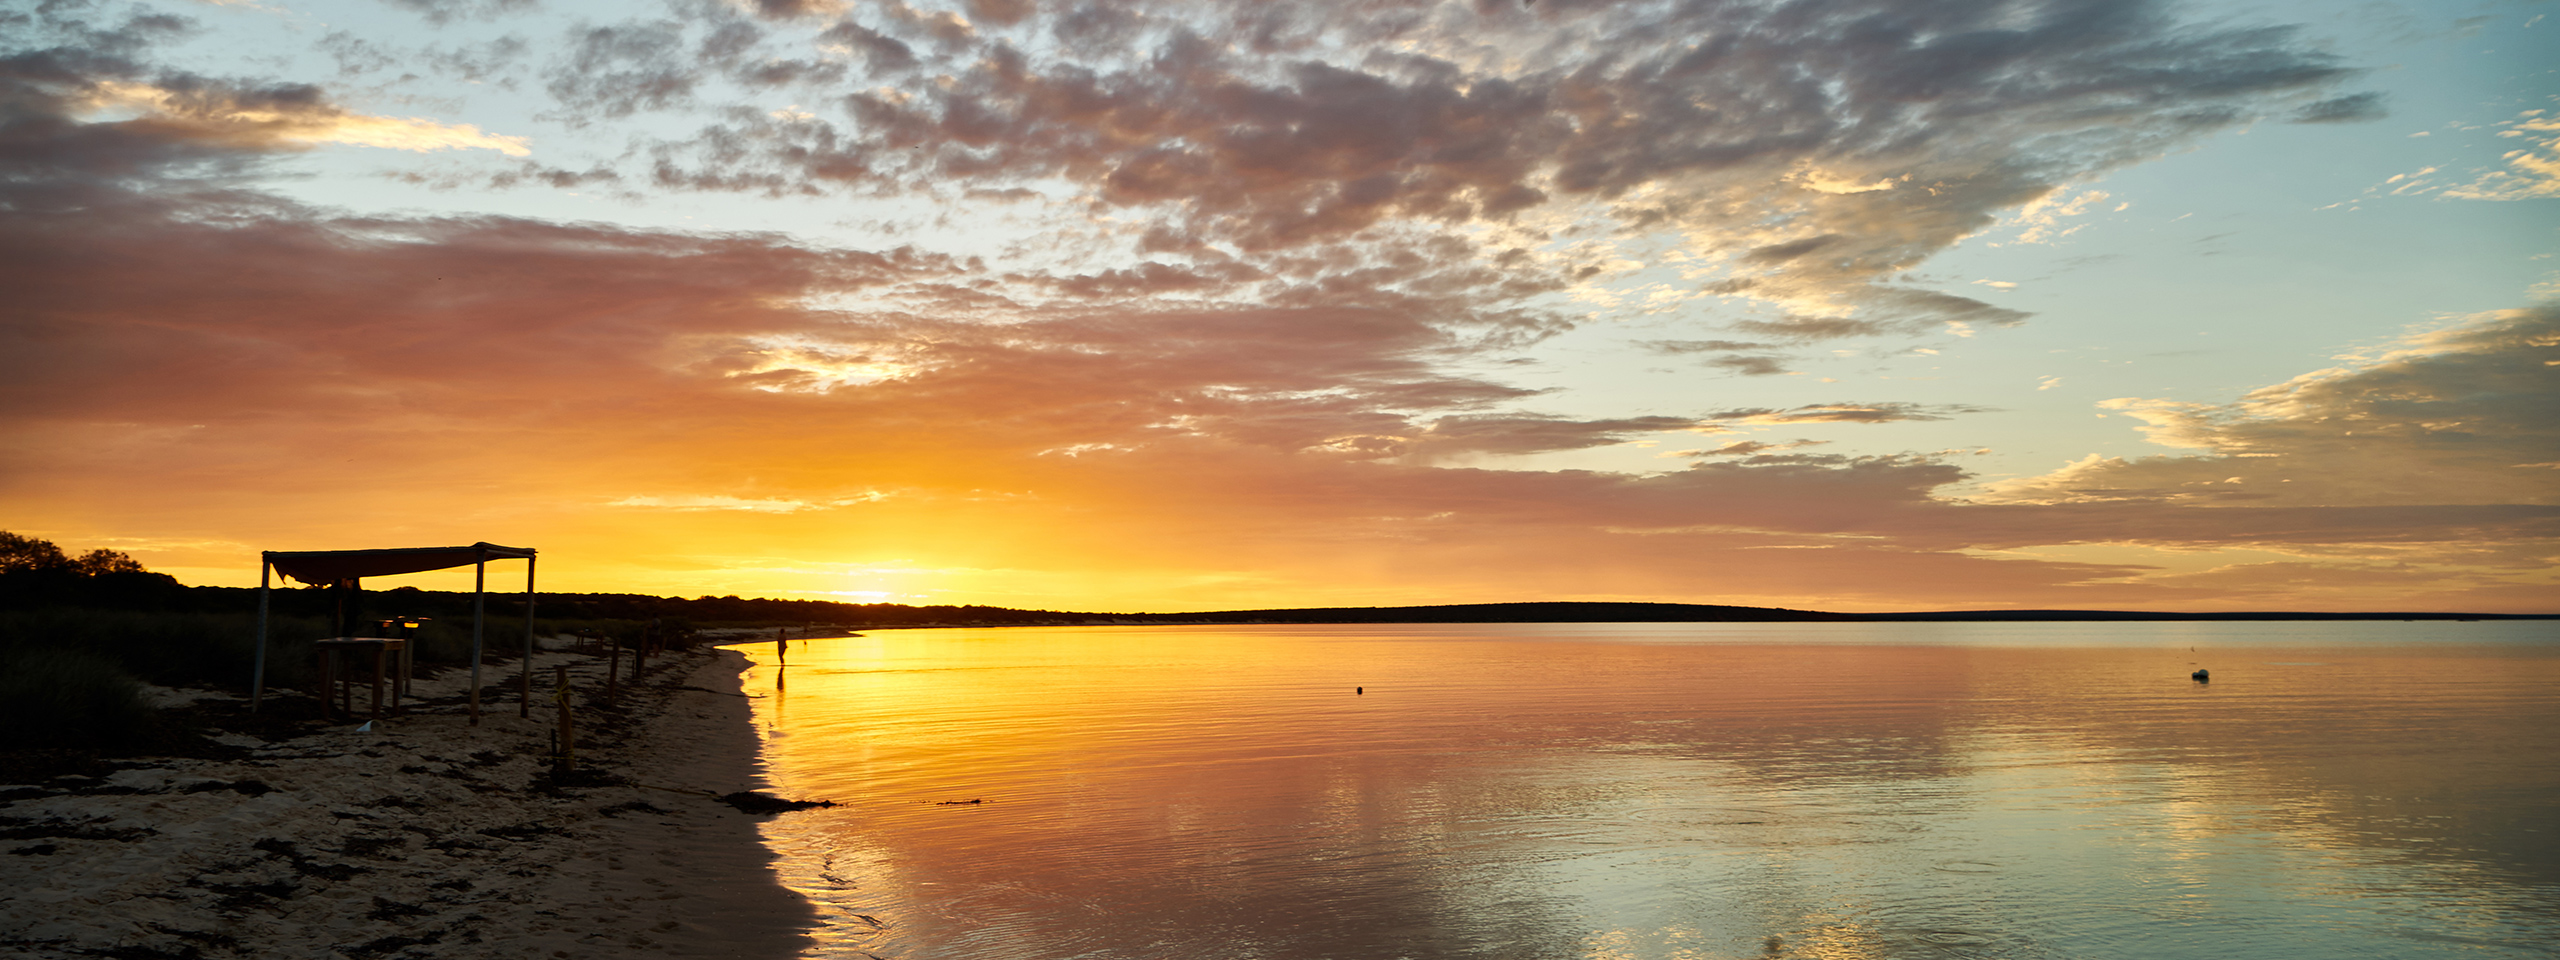 Shark Bay sunset, Monkey Mia